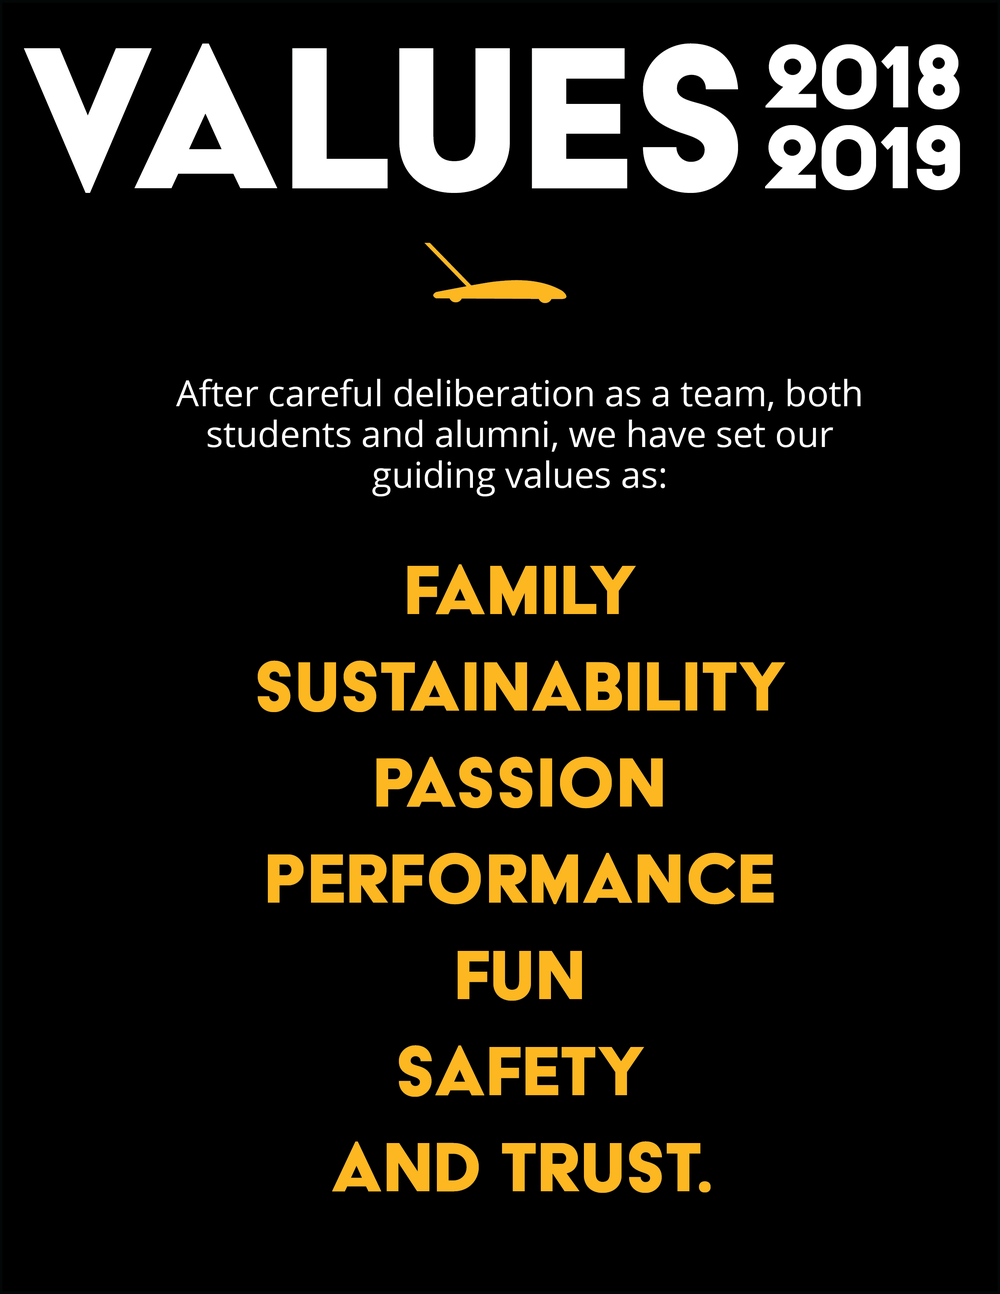 SRS MVVM 2018-19_2018-19 OUR VALUES.png